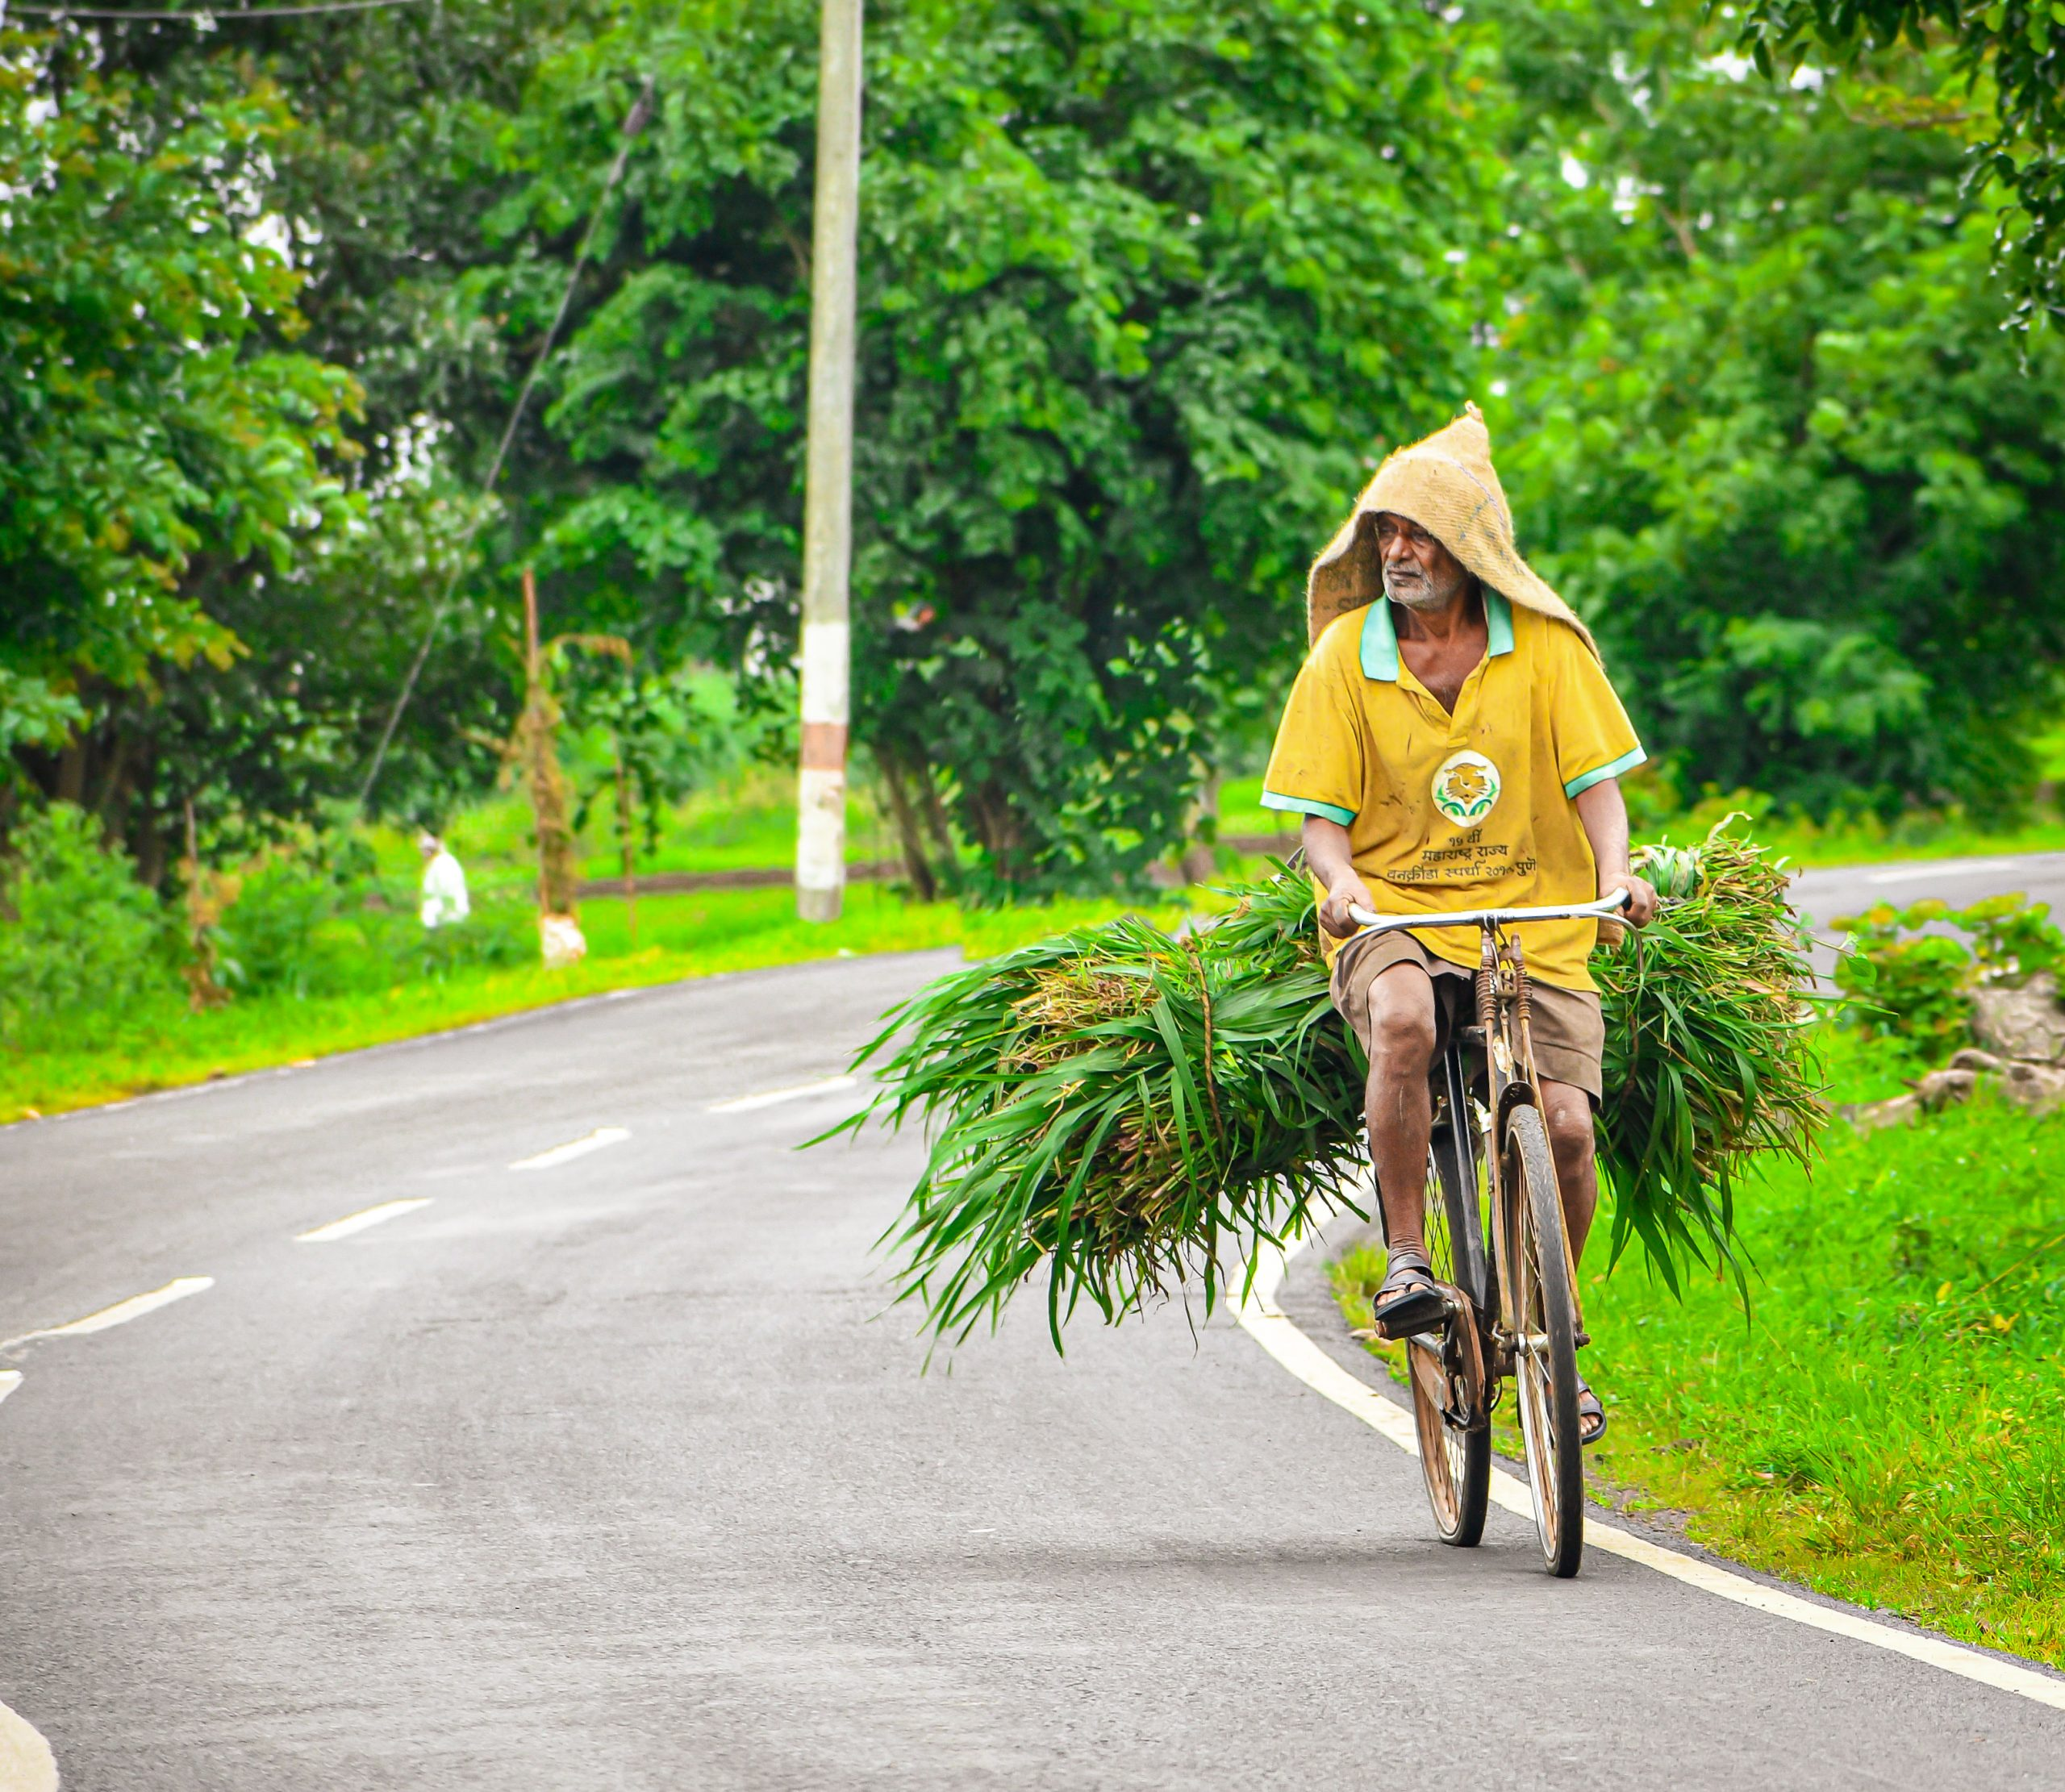 Farmer riding bicycle carrying his harvested crops